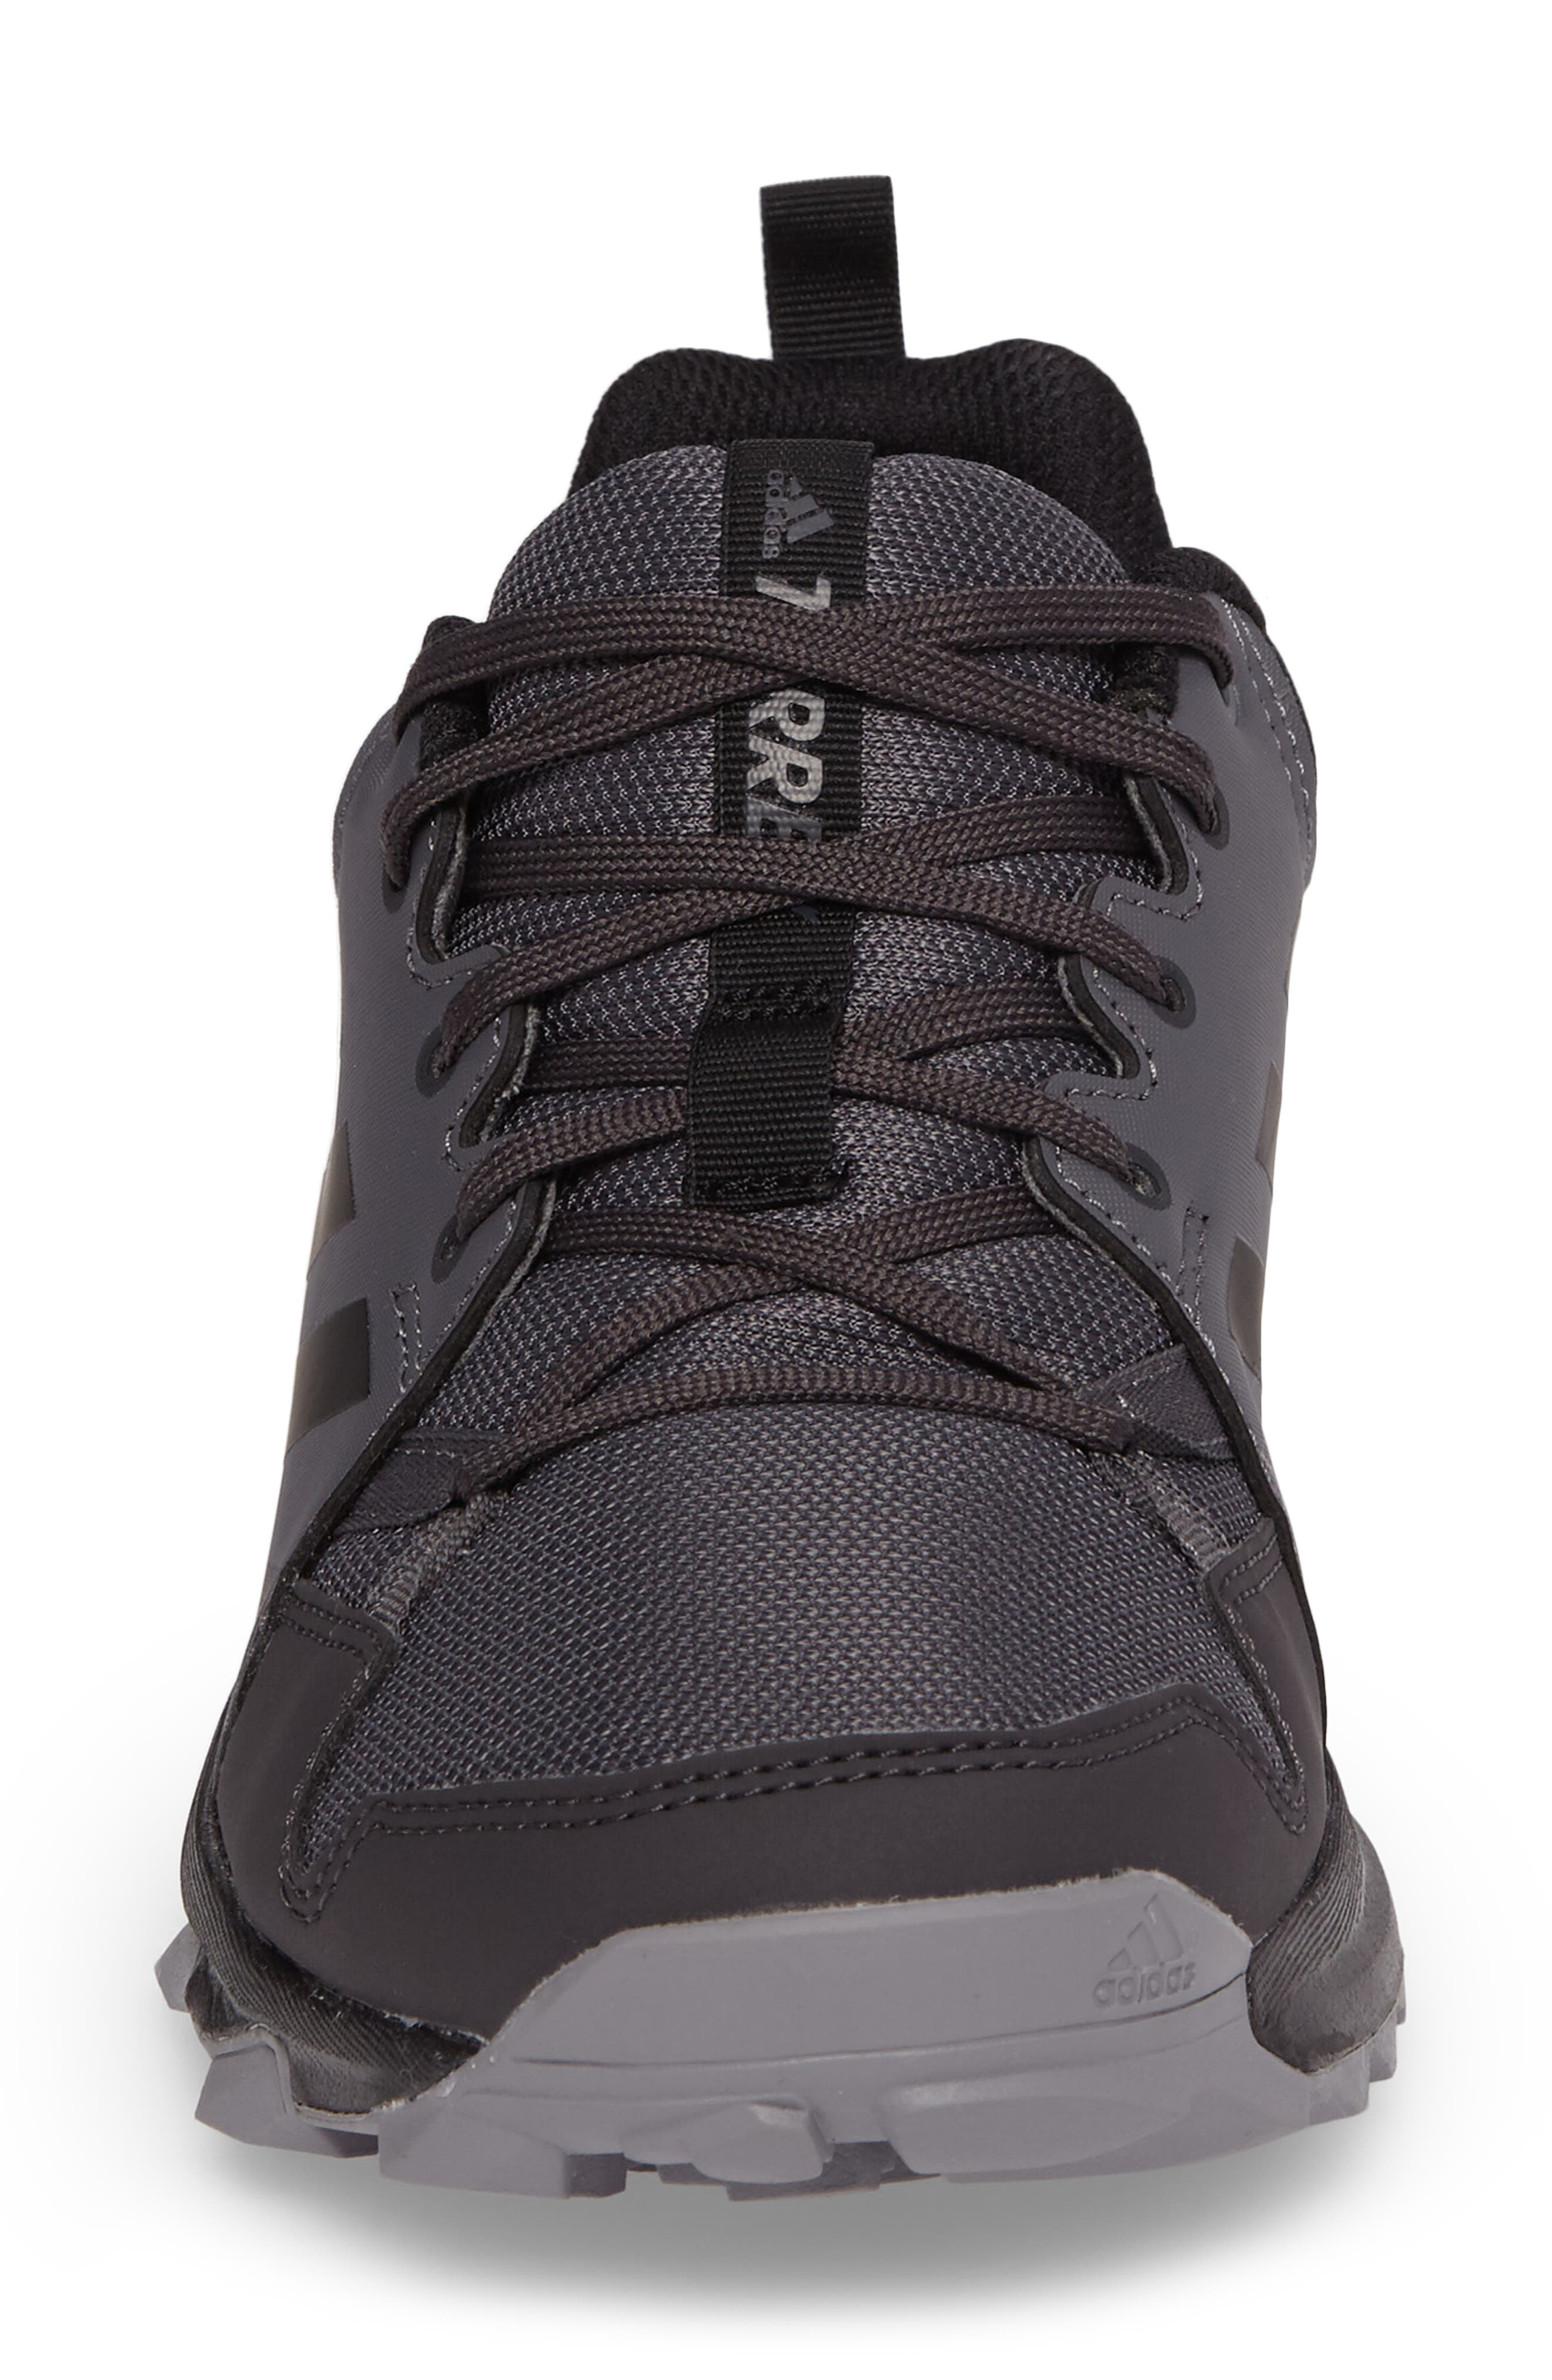 'Tracerocker' Athletic Shoe,                             Alternate thumbnail 4, color,                             002